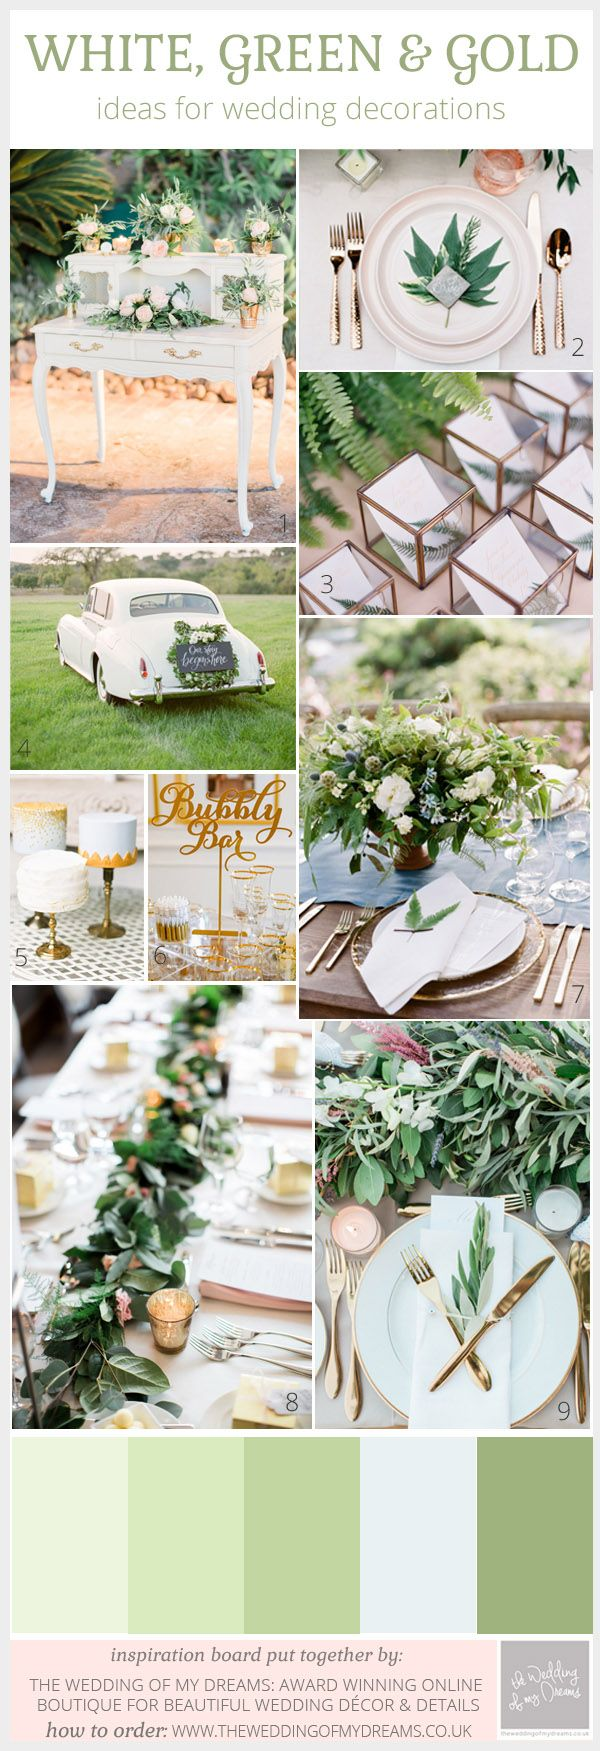 Green, White And Gold Wedding Ideas and Inspiration                                                                                                                                                     More